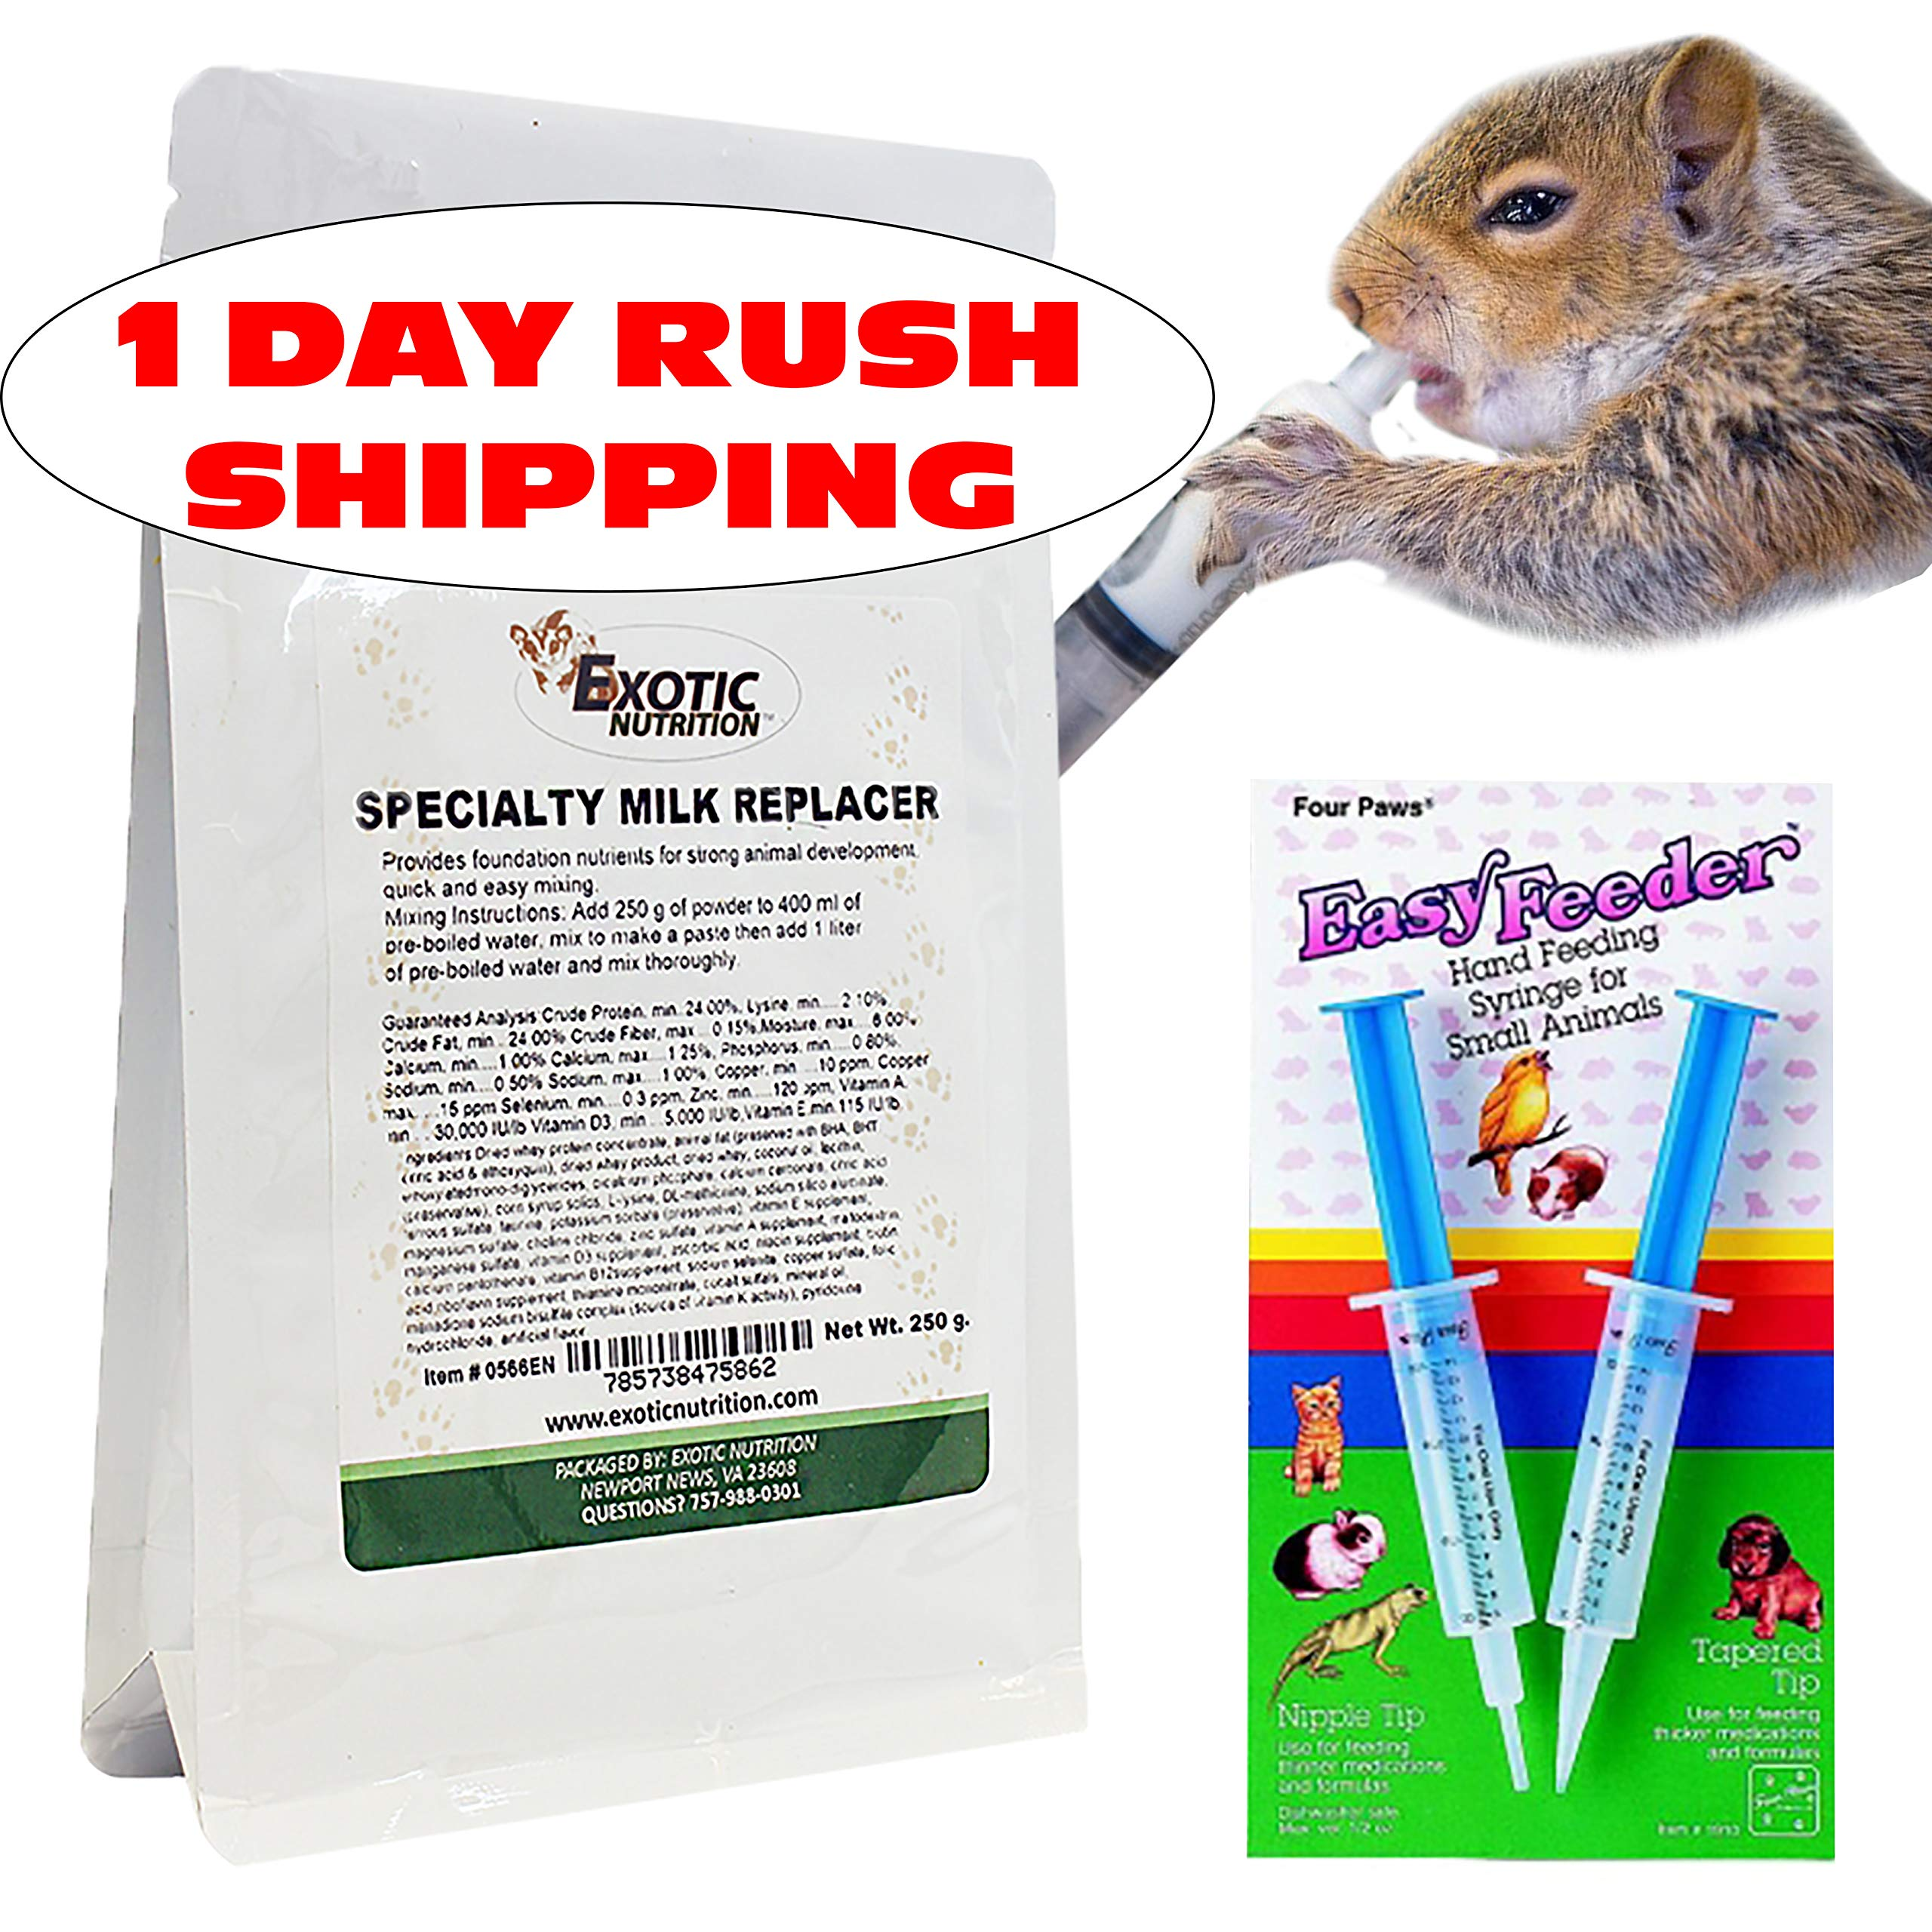 Exotic Nutrition Baby Squirrel Milk Replacer Kit - Formula + Feeding Syringes - Nursing Kit for Baby Squirrels, Rabbits, Opossums & Other Baby Animals by Exotic Nutrition